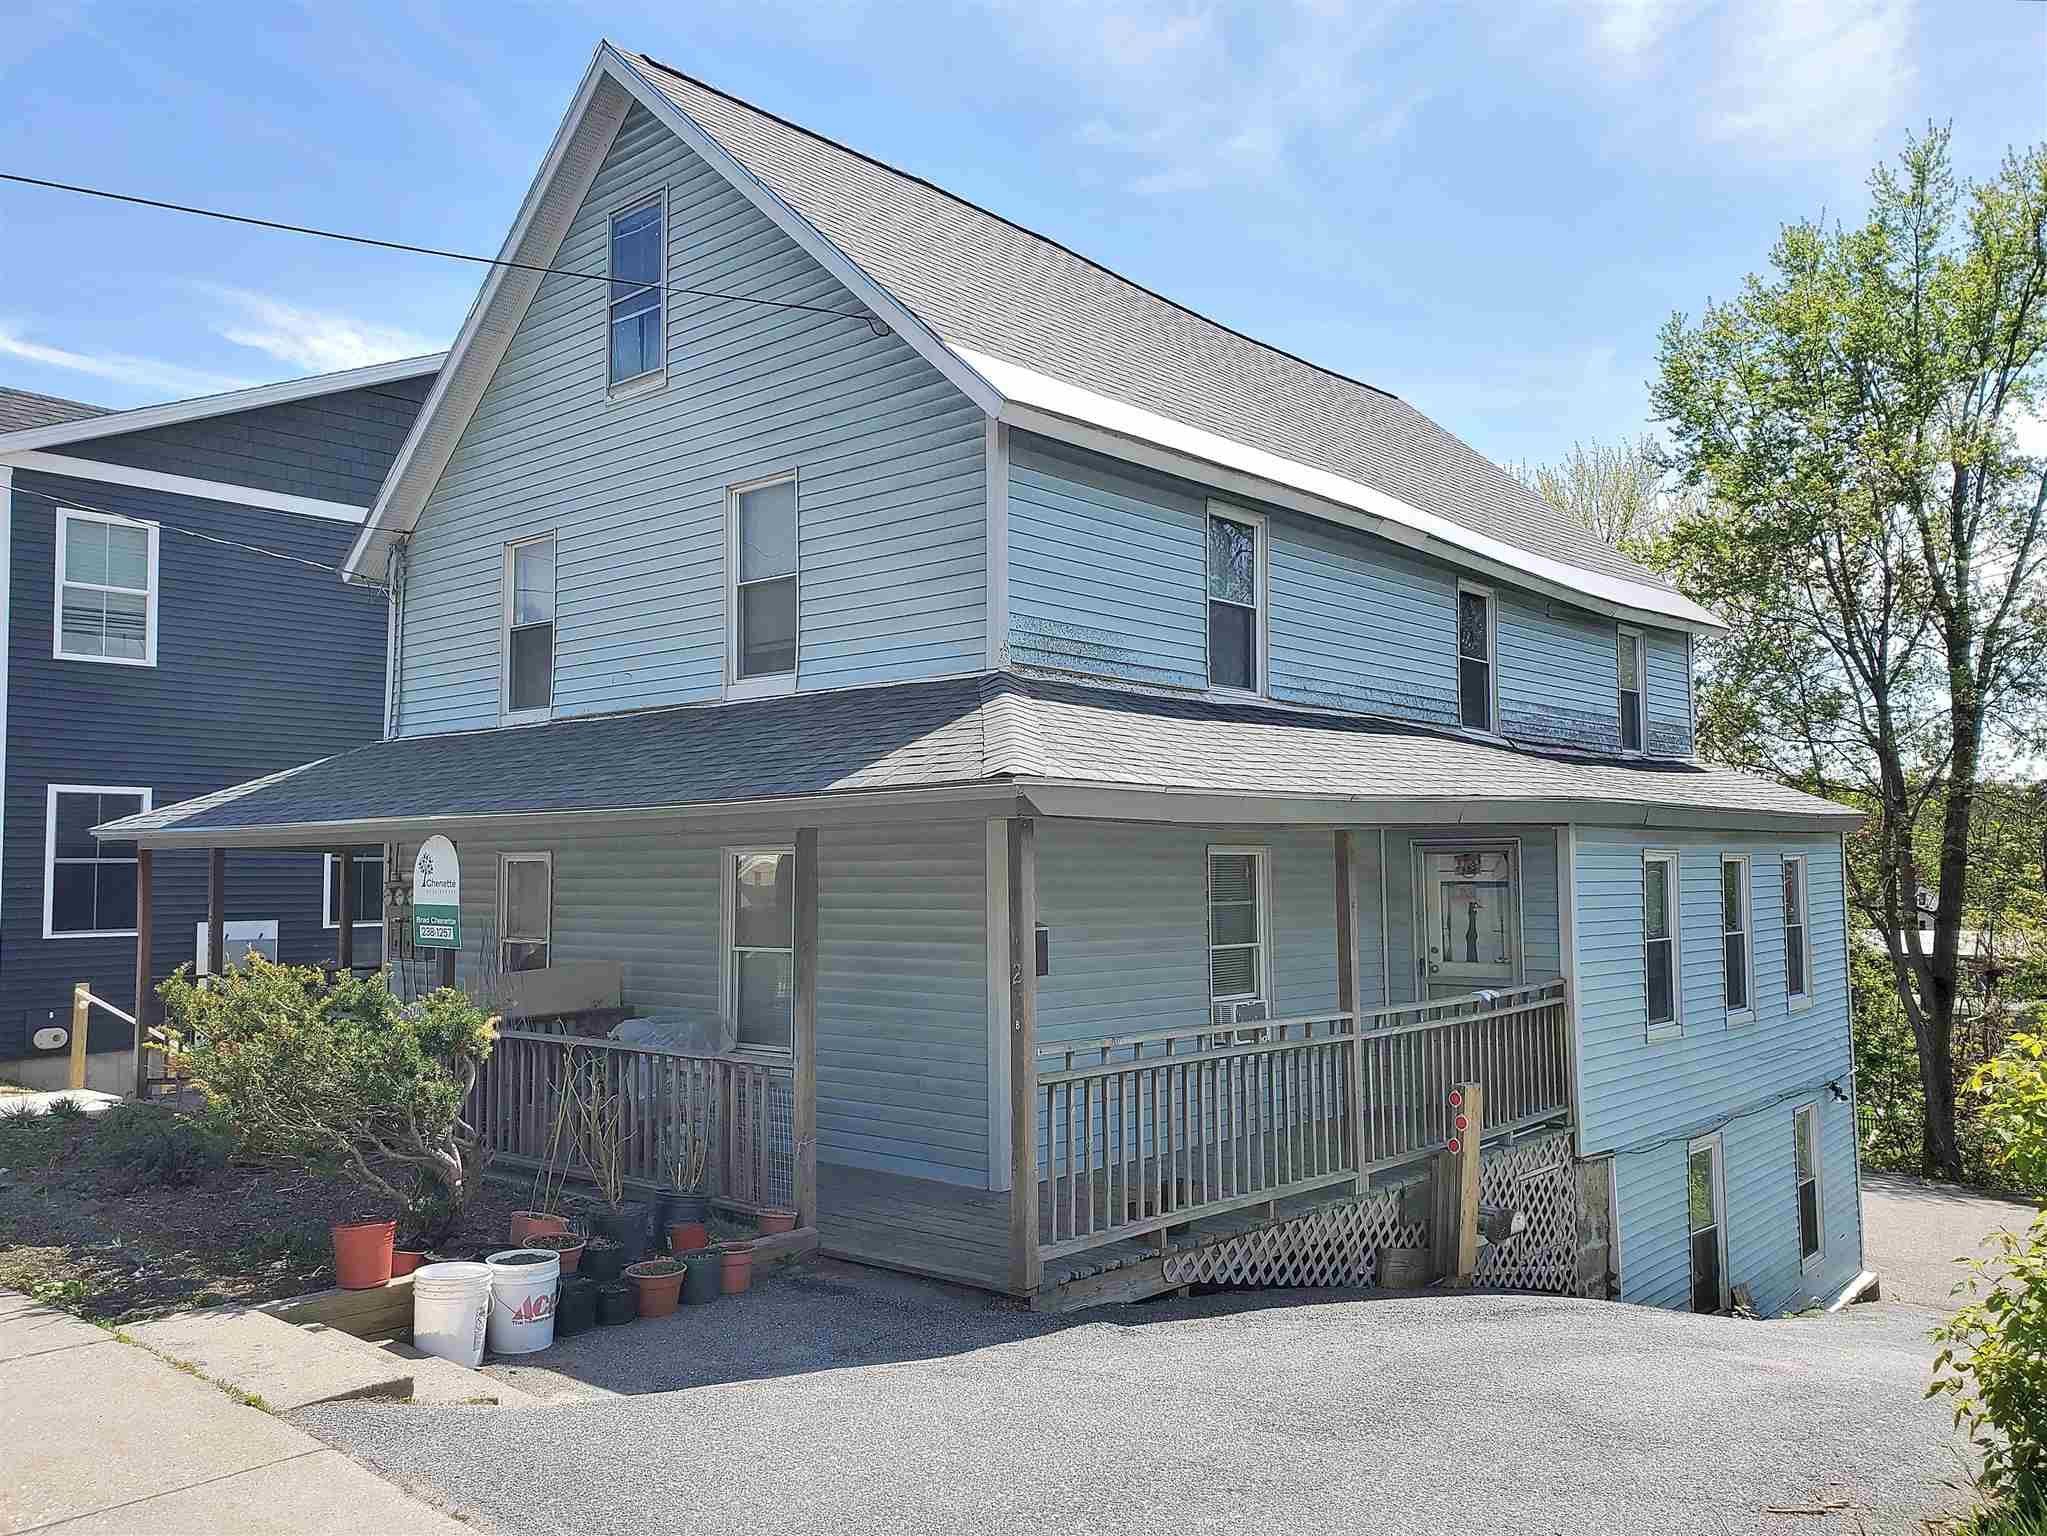 """Located in the area of Winooski primed to see the next wave of rejuvenation, this 3-unit multifamily residence has much to offer. Within the new """"forms Based"""" zoning code that will spark investment. Walk to the thriving downtown dining and night life. Nearby dog park and scenic cascades river walk will be sure to attract owners and tenants. All utilities metered separately helps keep owners' expenses lower. Updated efficient heating and hot water systems in place.  Plenty of on-site off-street parking for the residents to enjoy. Newer roof shingles recently installed for peace of mind. """"Run the numbers"""" and you'll like what you find!"""